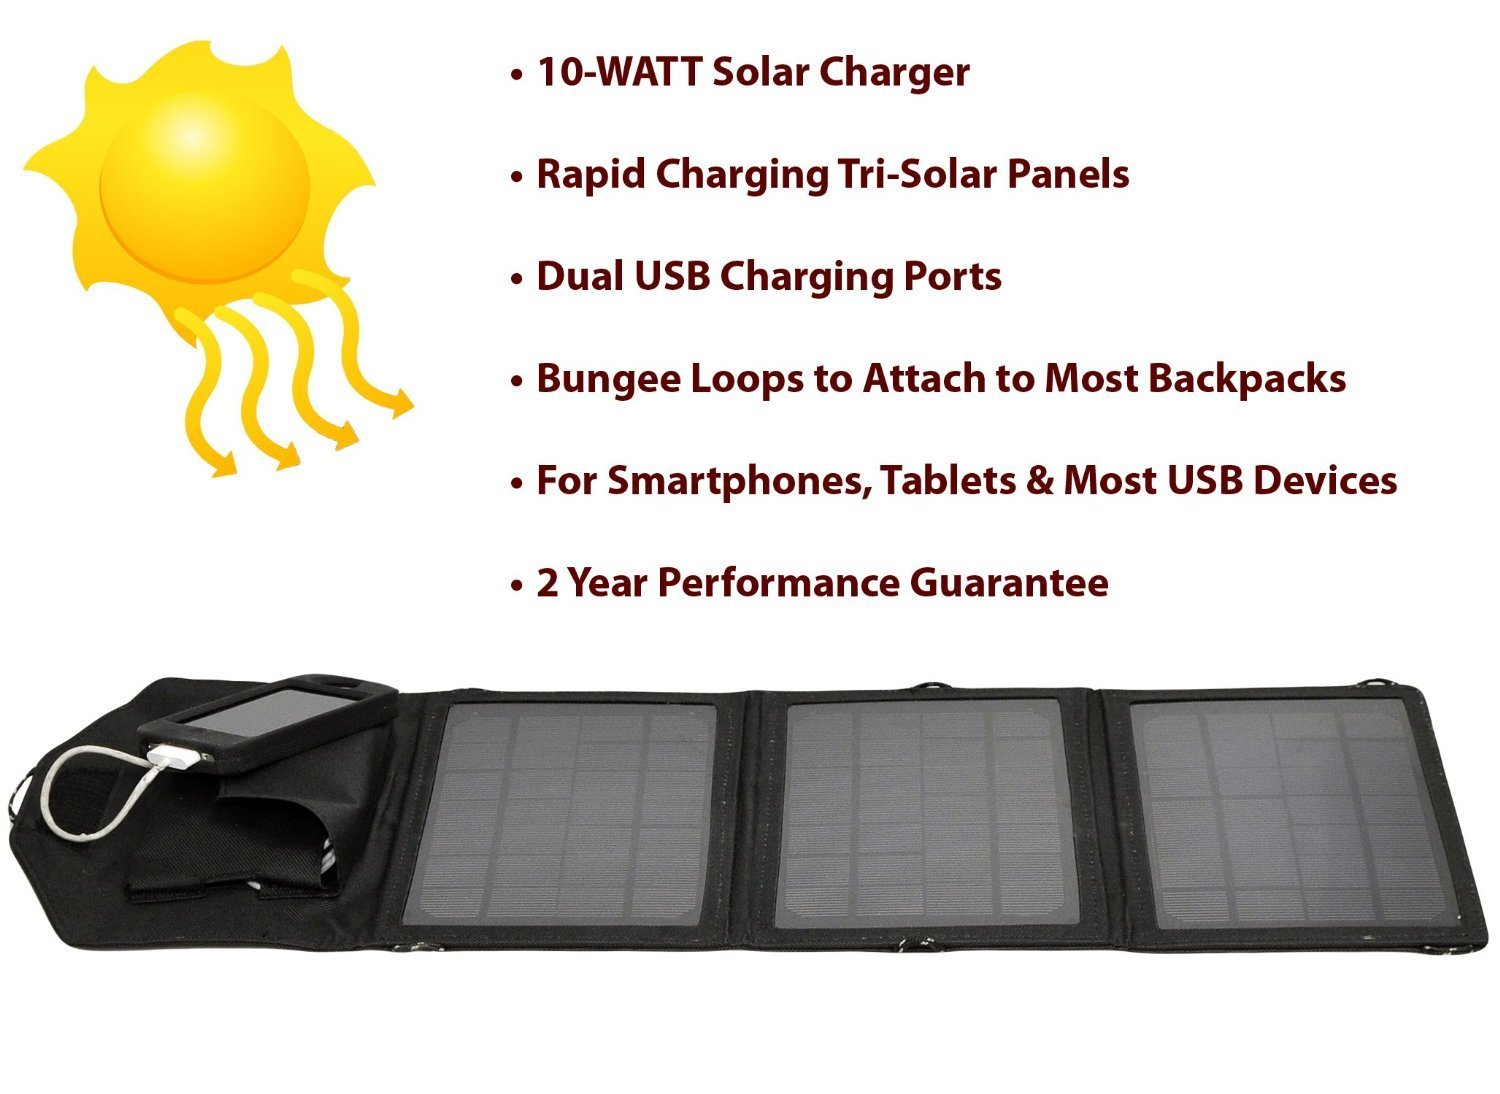 Opteka SP-10W Universal 10-WATT Triple-Panel Rapid Solar Charger with 2 USB Ports for 47st Photo Kindle Fire, Fire HD, Paperwhit at Sears.com